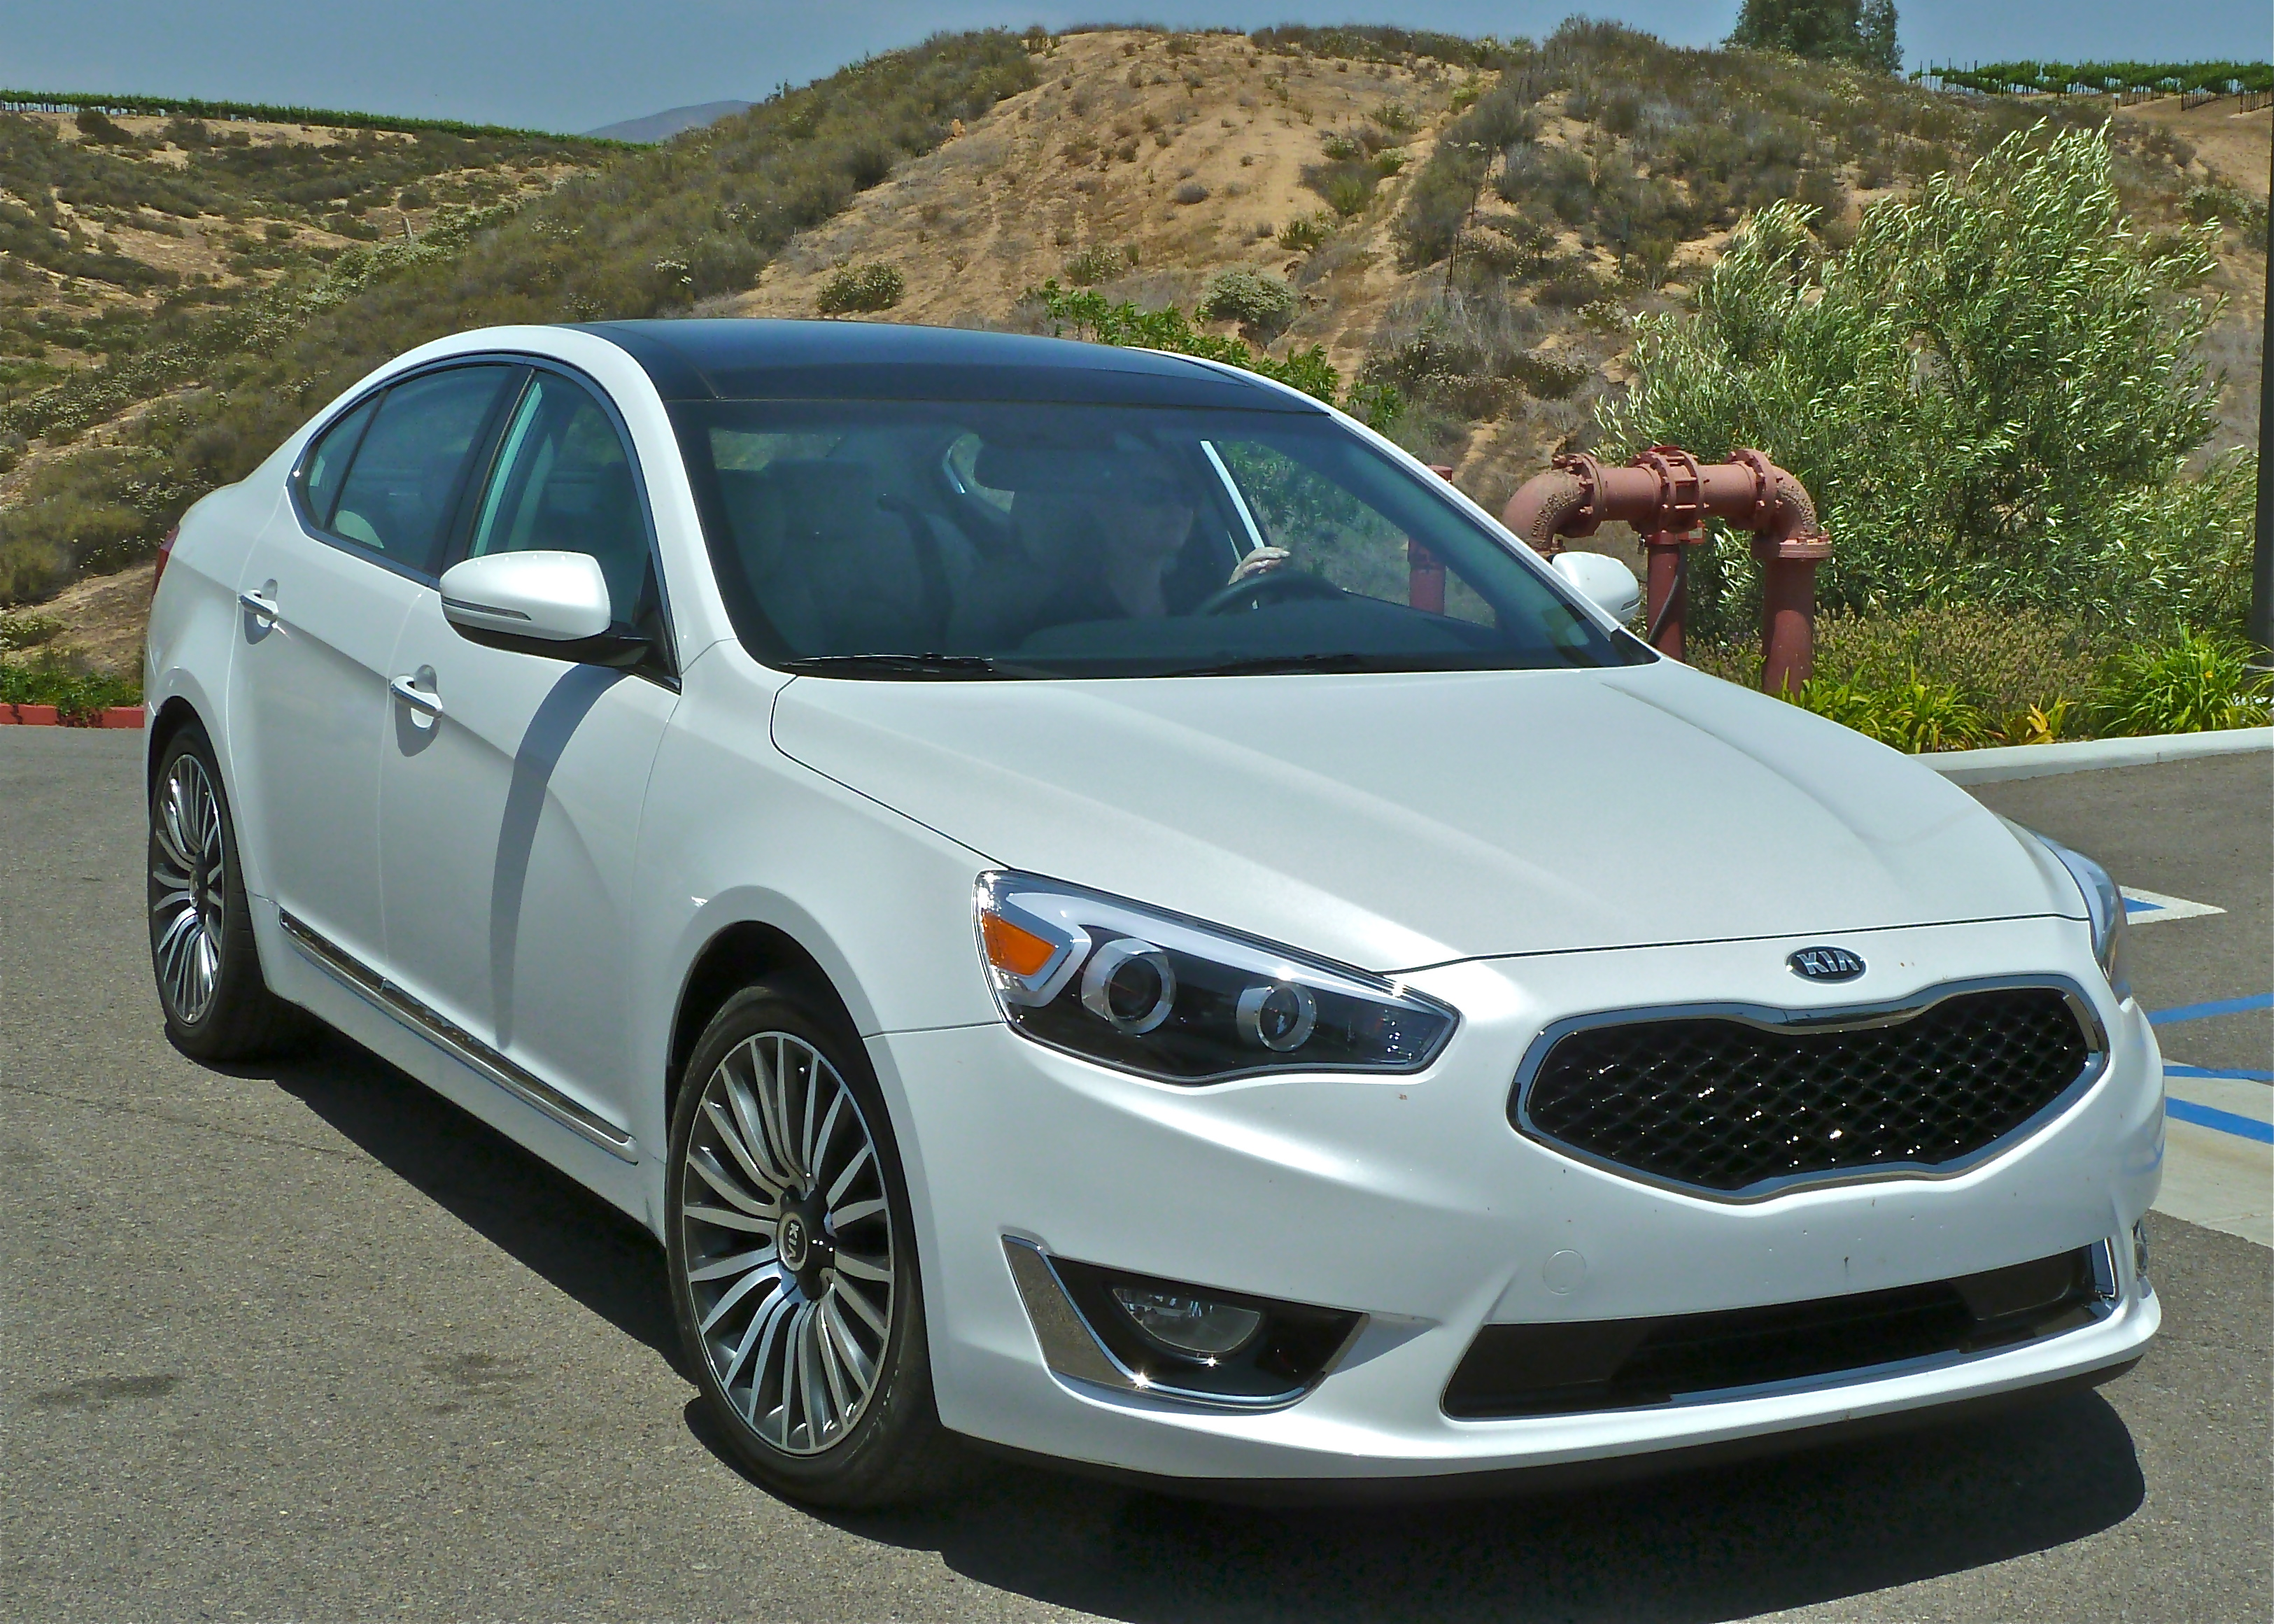 kia rides cadenza into luxury category new car picks. Black Bedroom Furniture Sets. Home Design Ideas